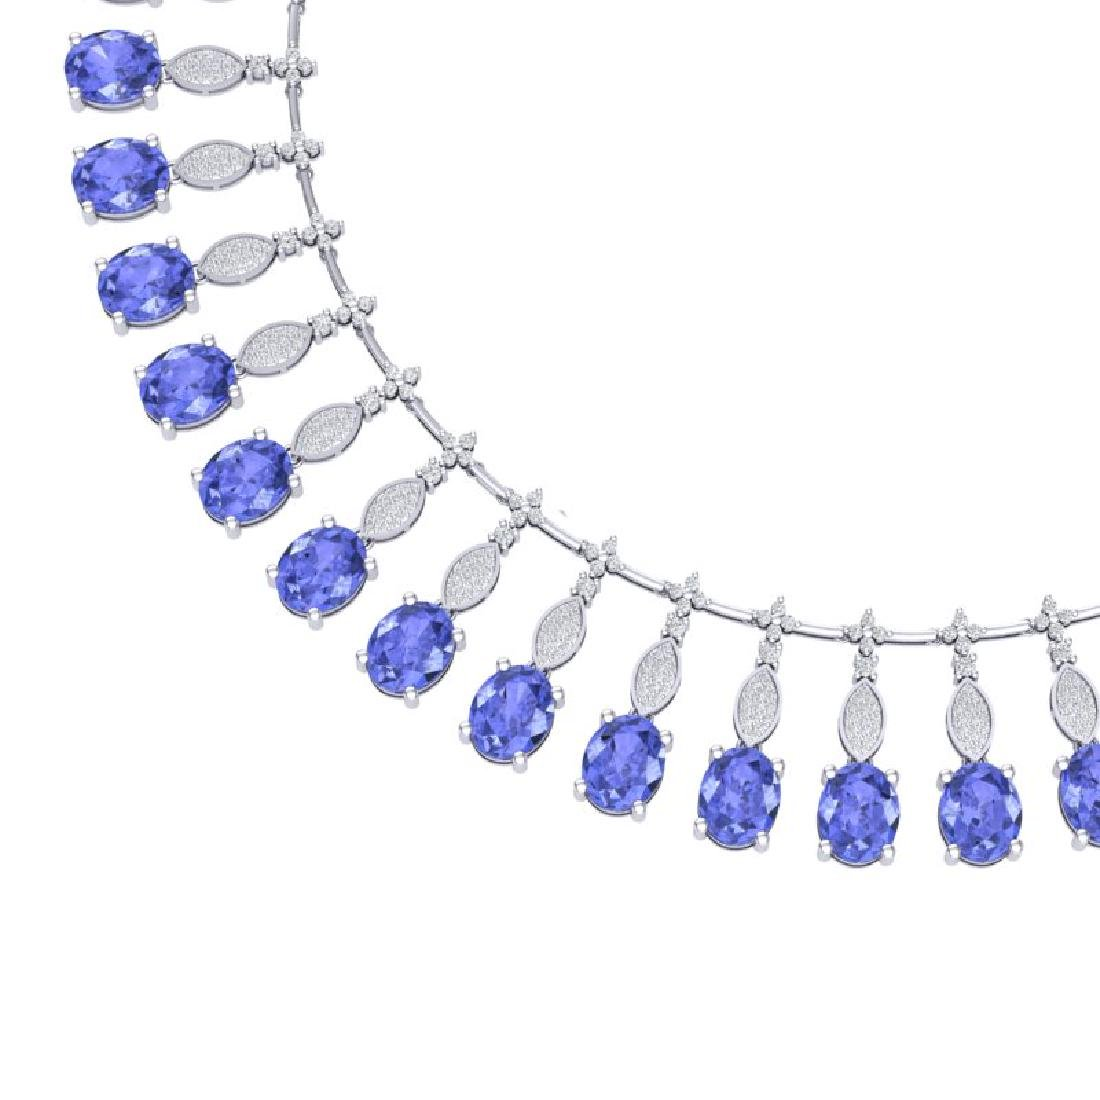 57.15 CTW Royalty Tanzanite & VS Diamond Necklace 18K